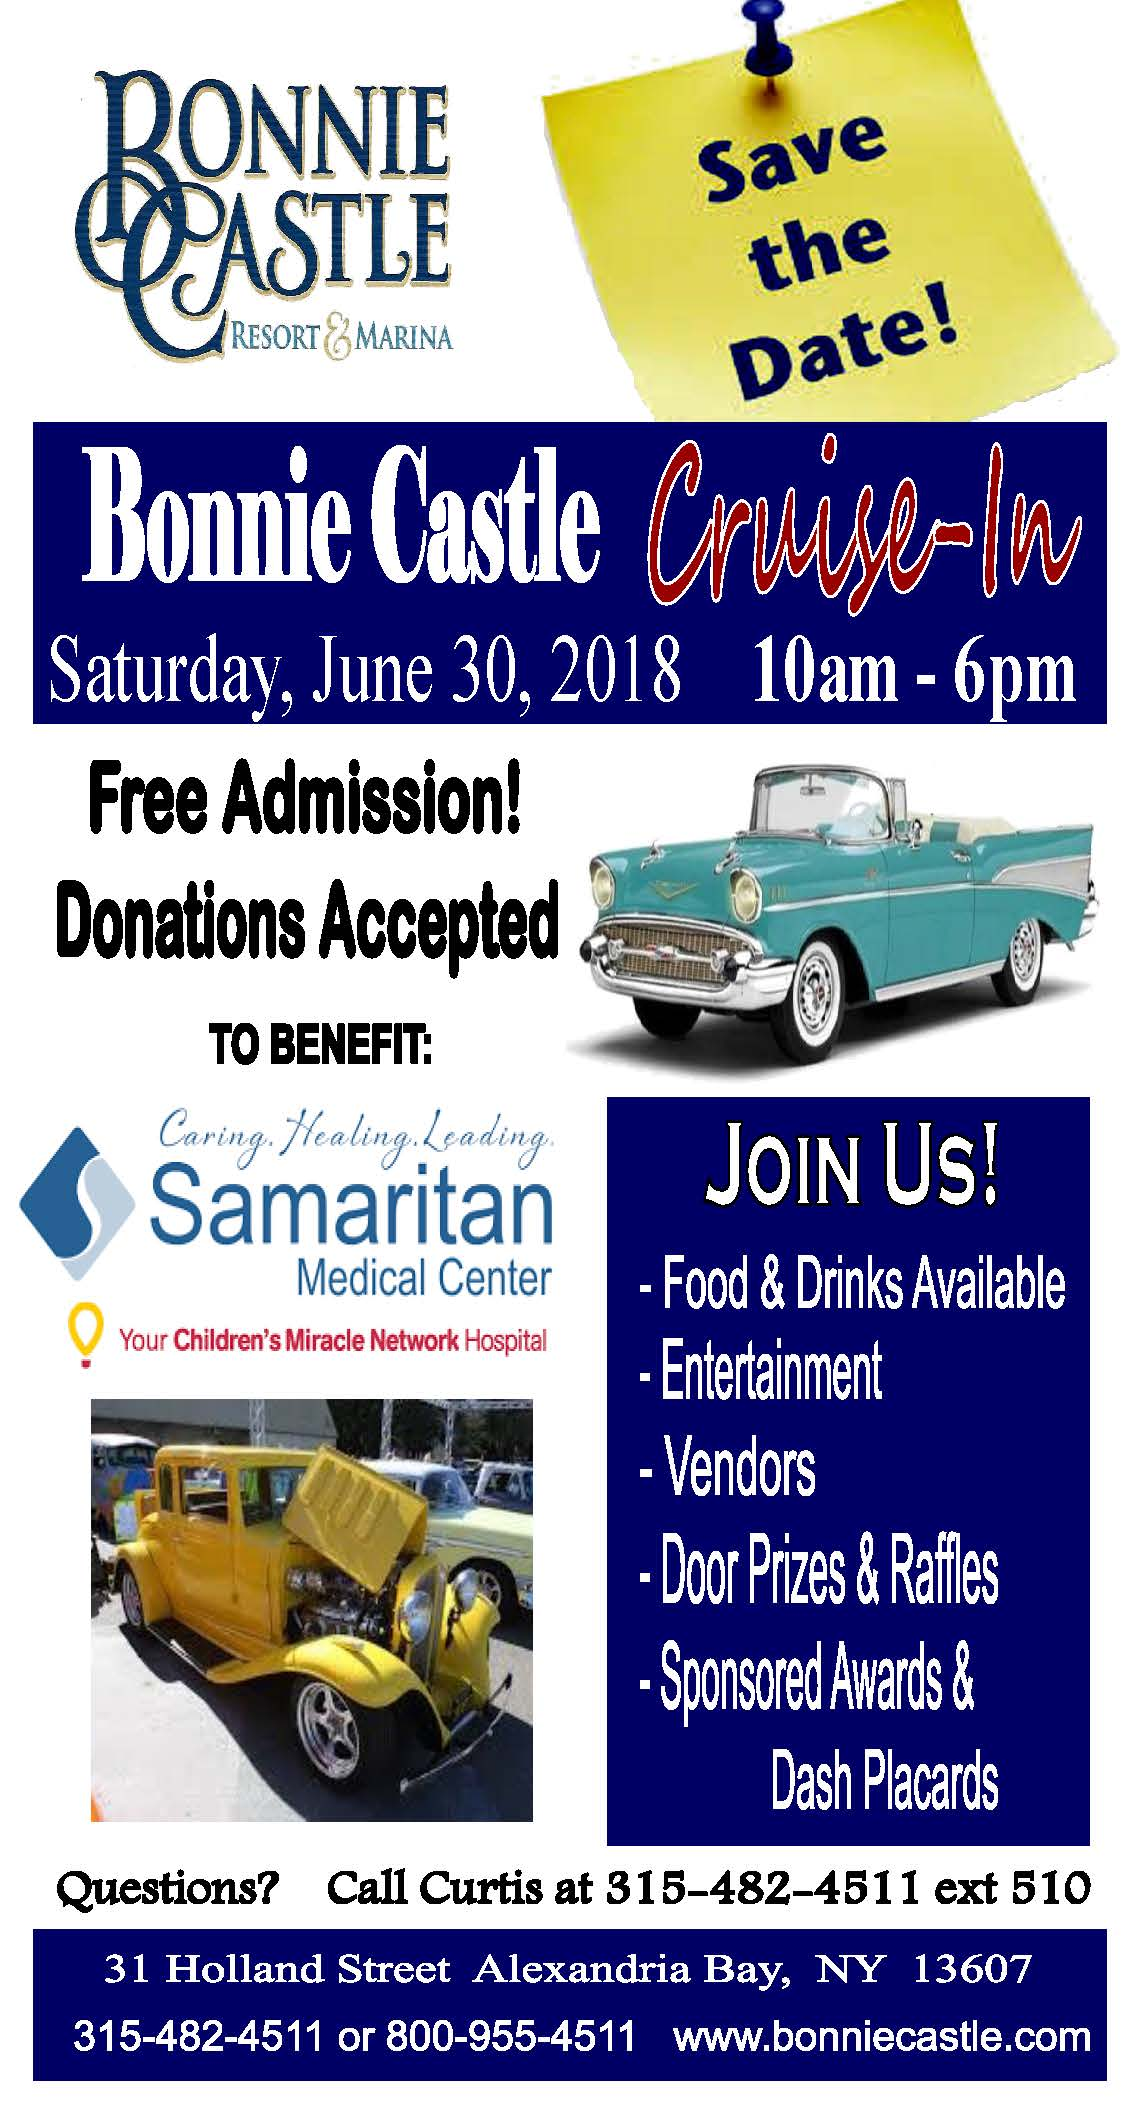 Bonnie Castle Cruise-In 2018 @ Bonnie Castle Resort & Marina | Alexandria Bay | New York | United States